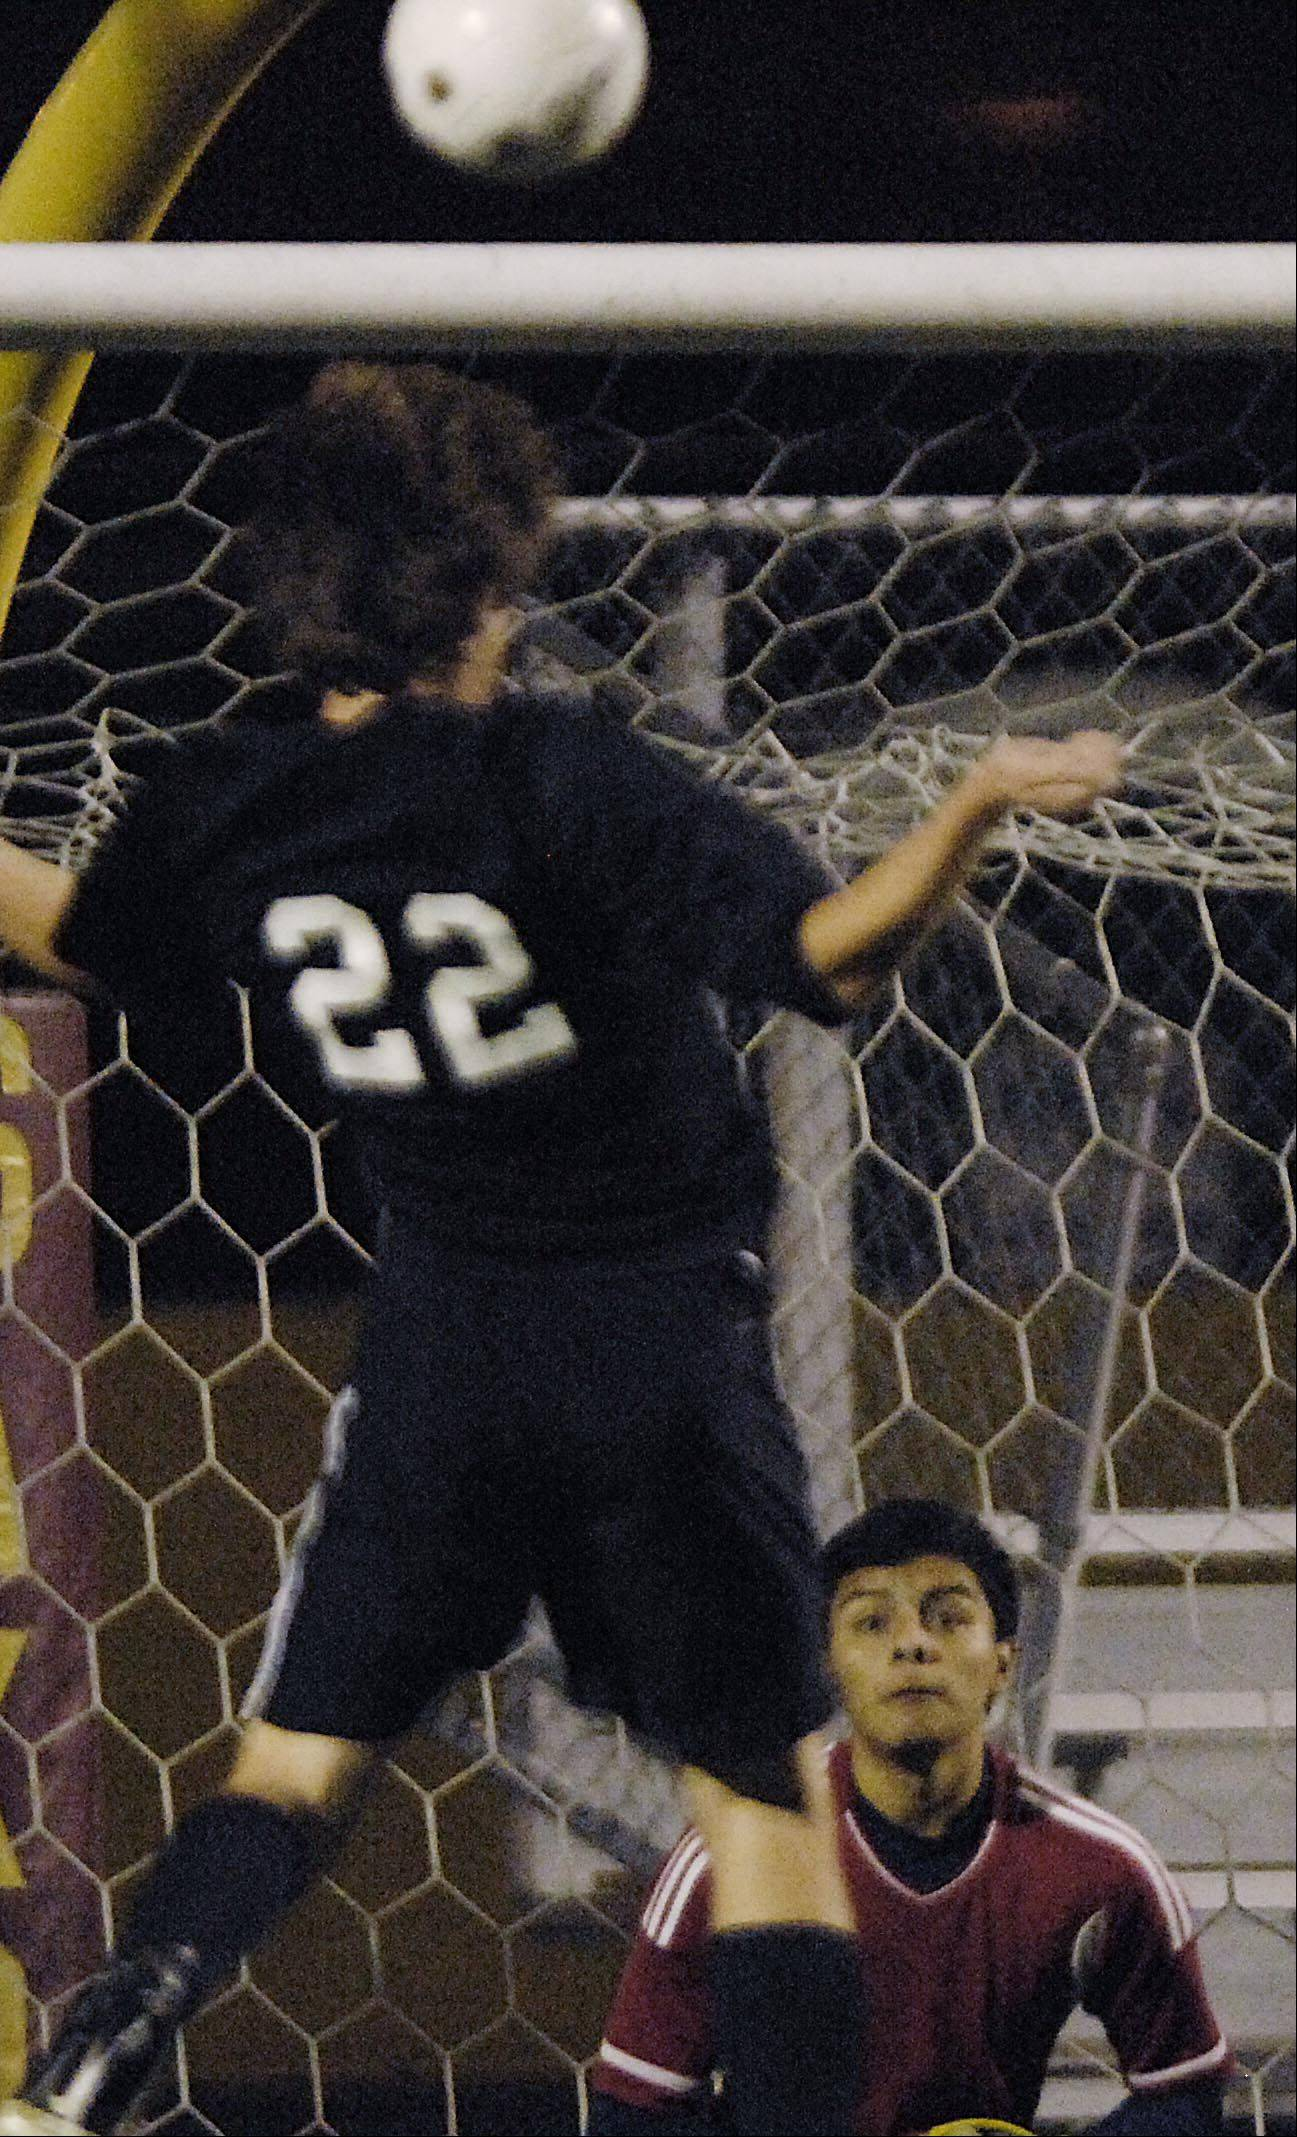 Larkin goalkeeper Aldair Dominguez watches as York's Jack Hayes sends a corner kick over the net with his head Tuesday in the Schaumburg regional playoff game.